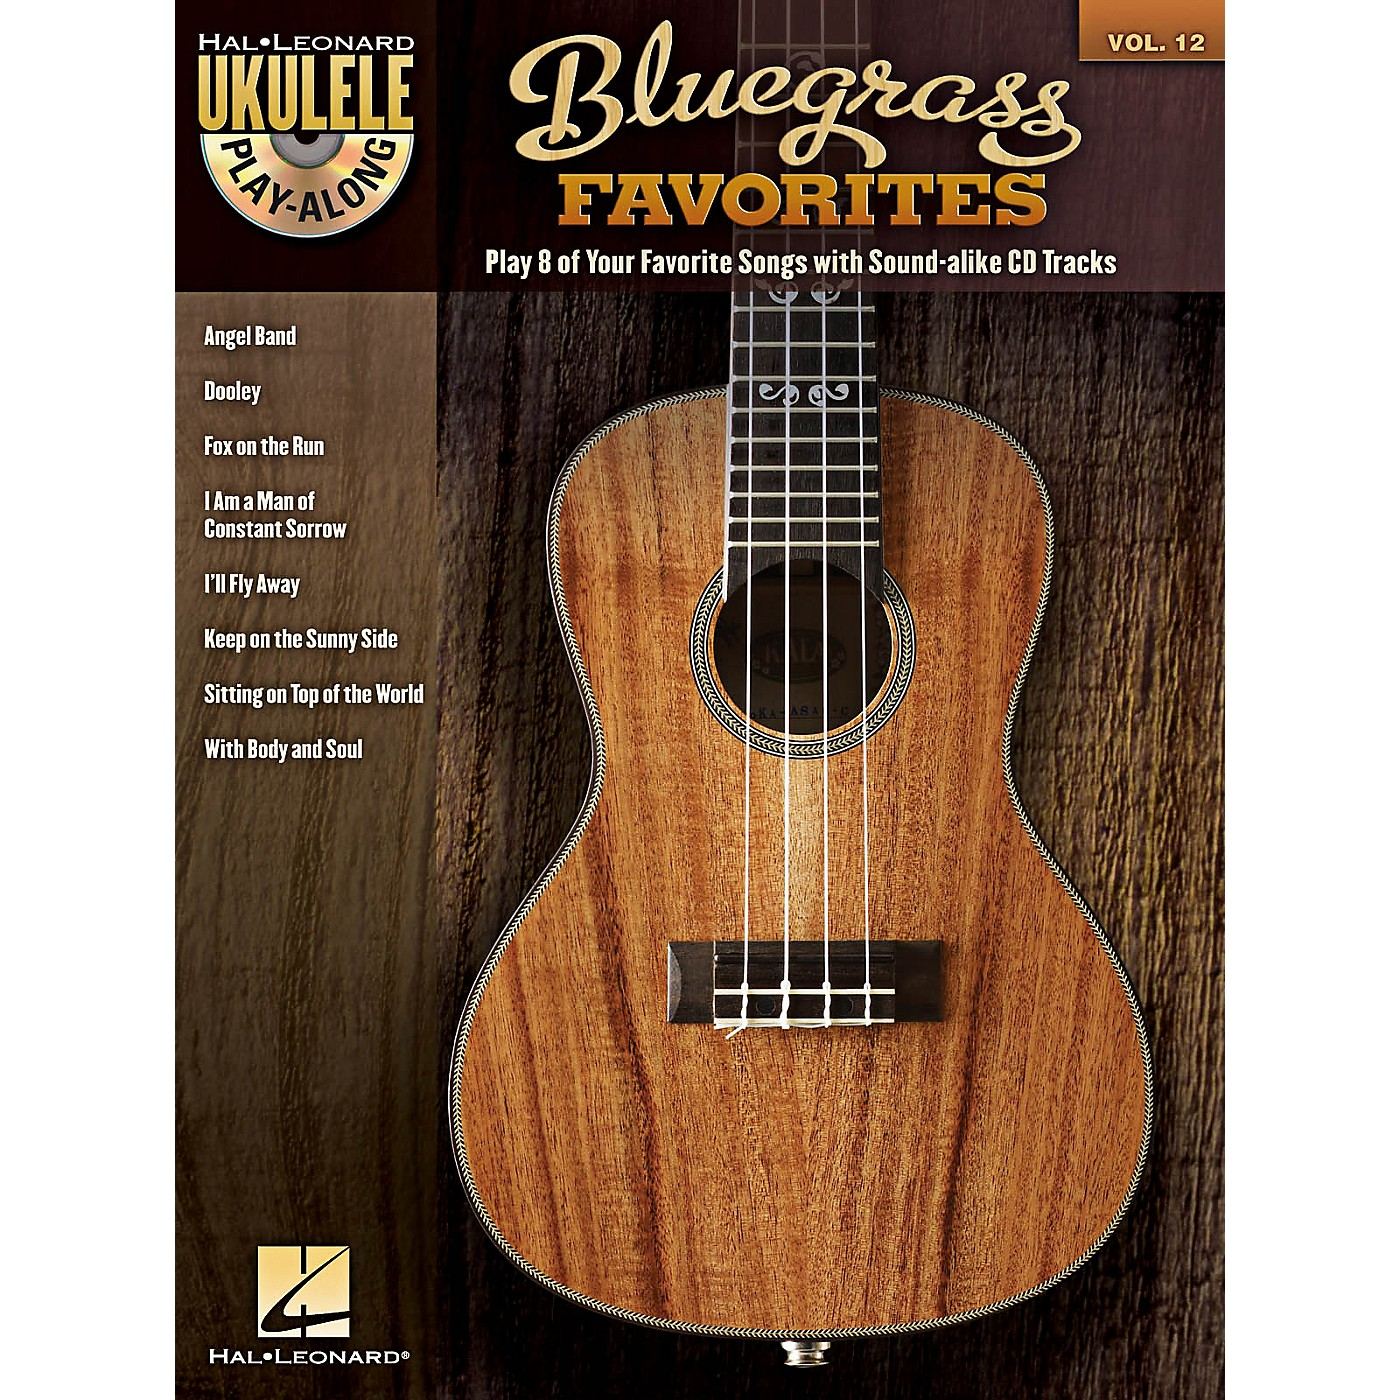 Hal Leonard Bluegrass Favorites - Ukulele Play-Along Vol. 12 Book/CD thumbnail